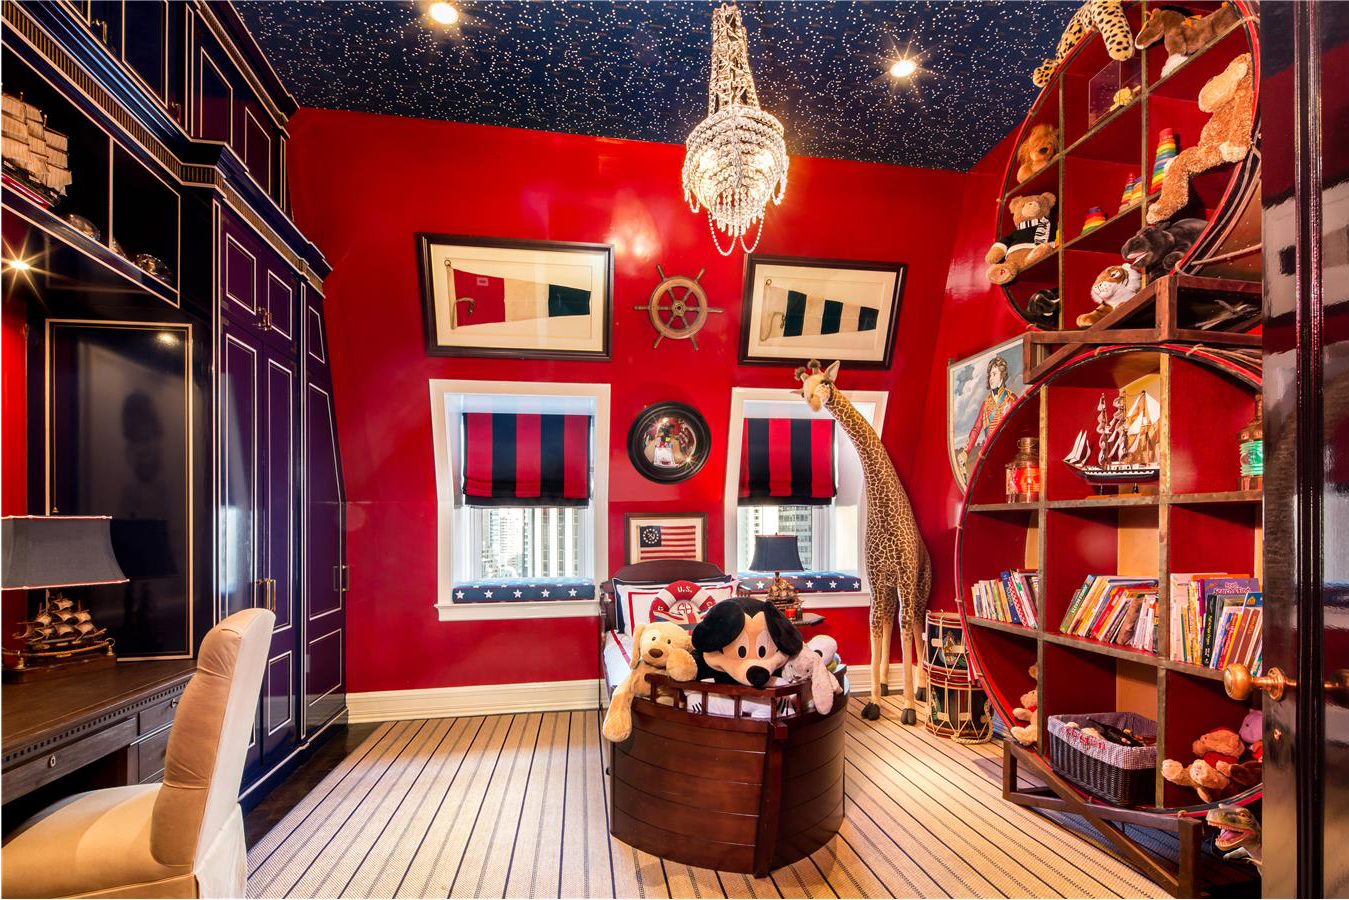 A child's bedroom is decorated with nautical-themed décor.